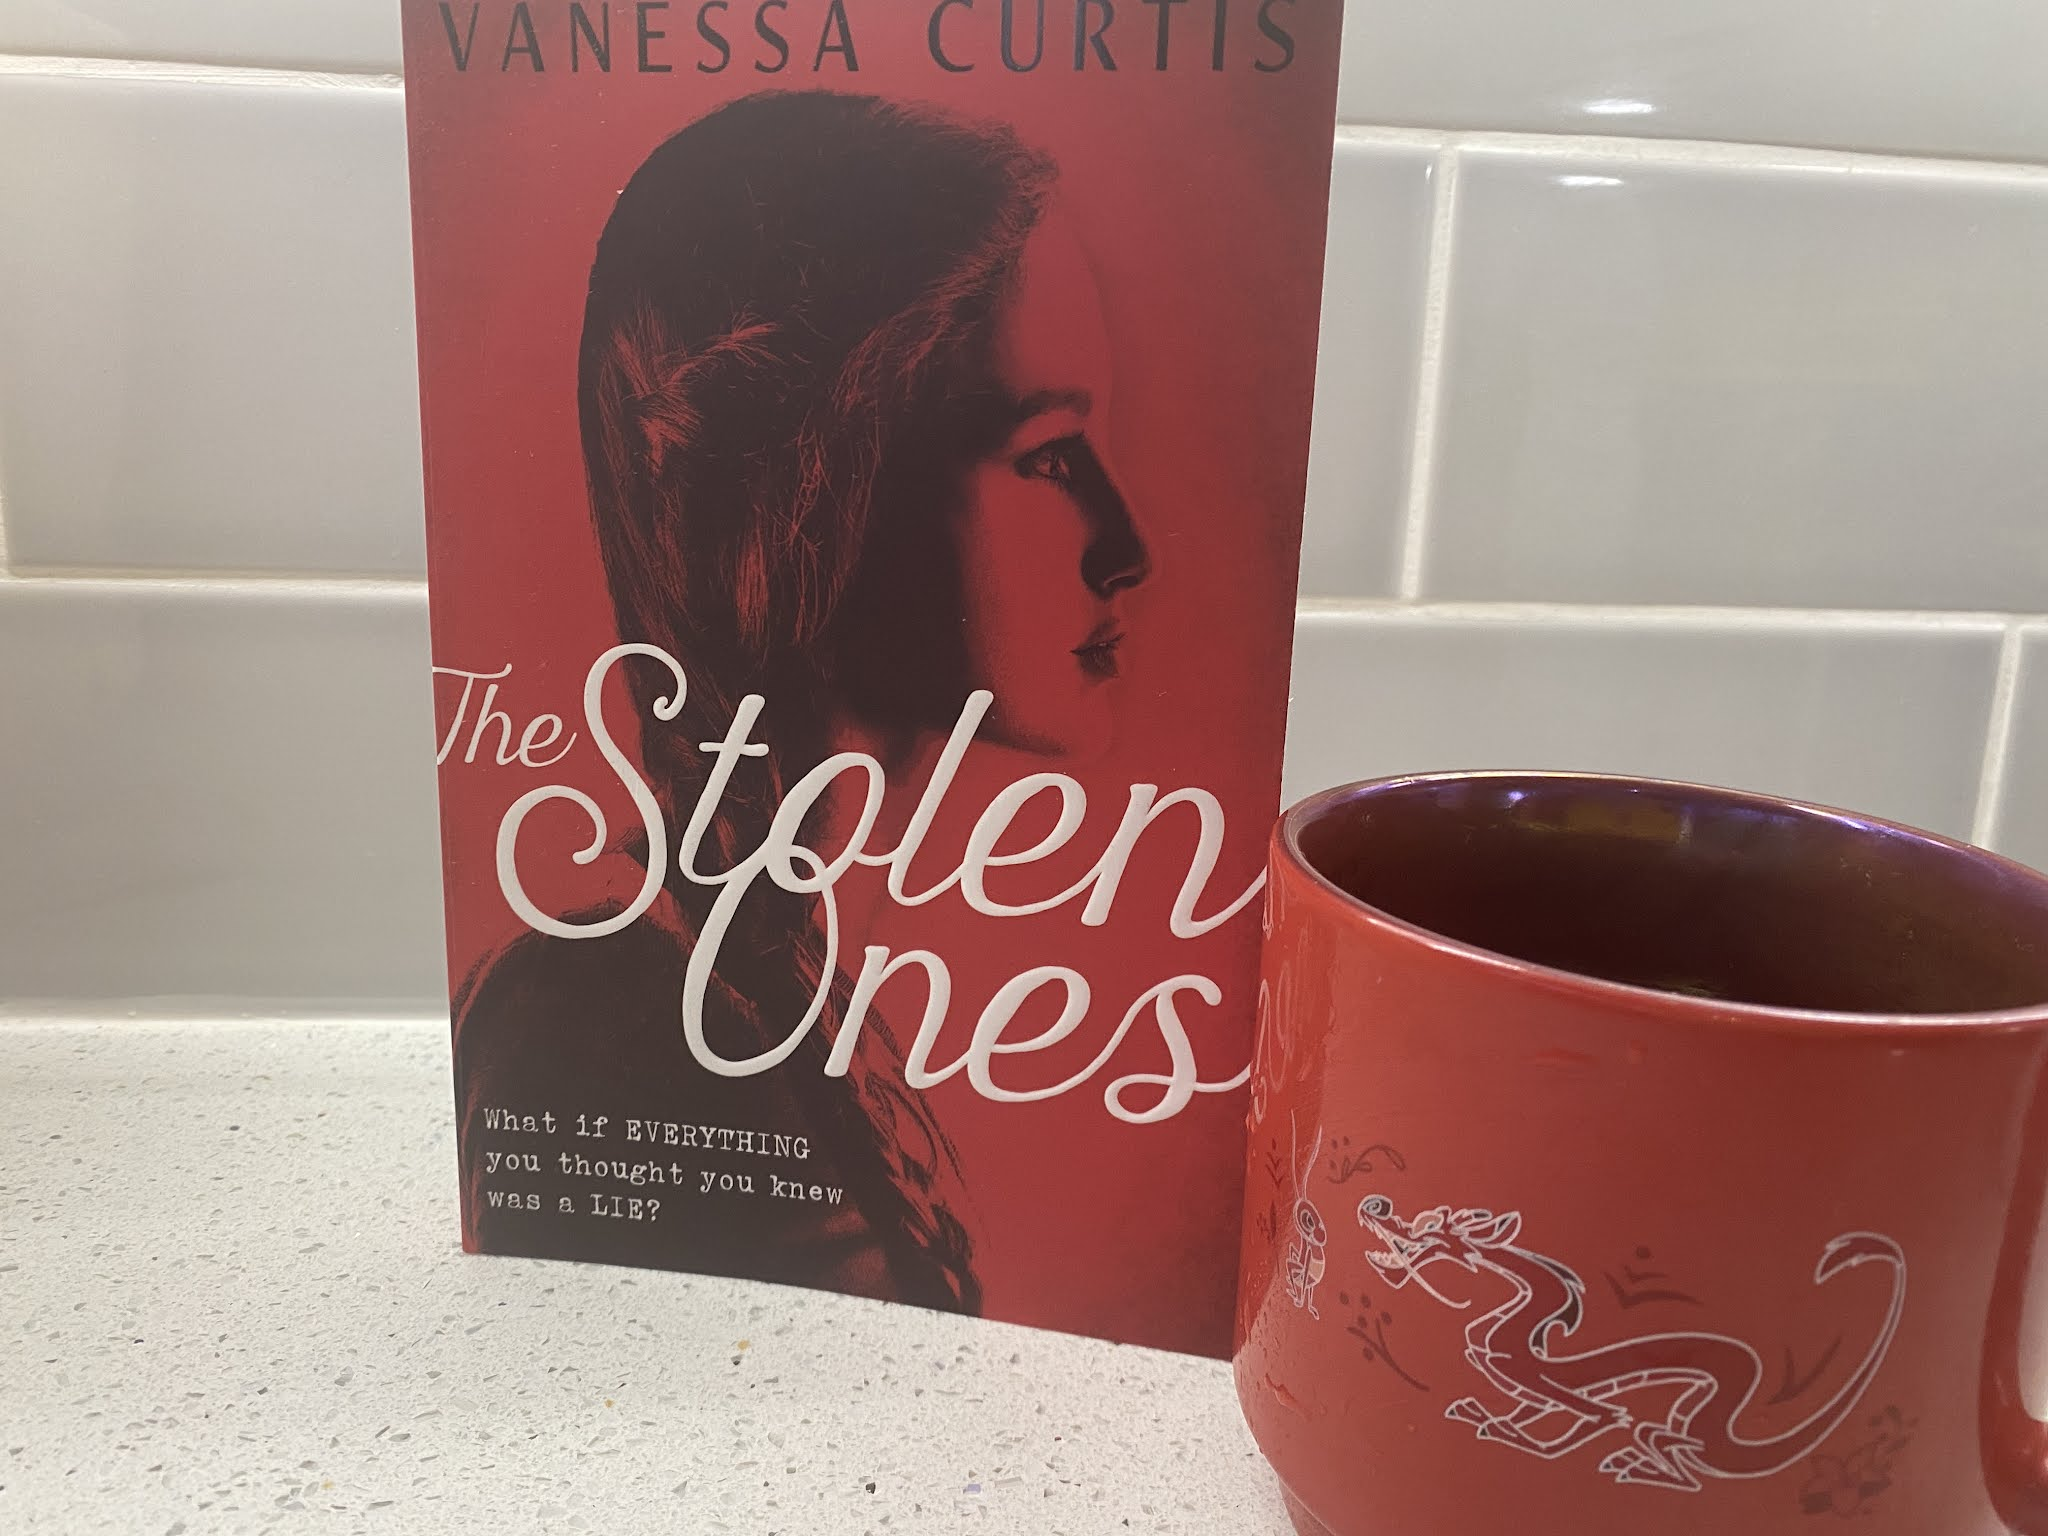 The Stolen Ones by Vanessa Curtis